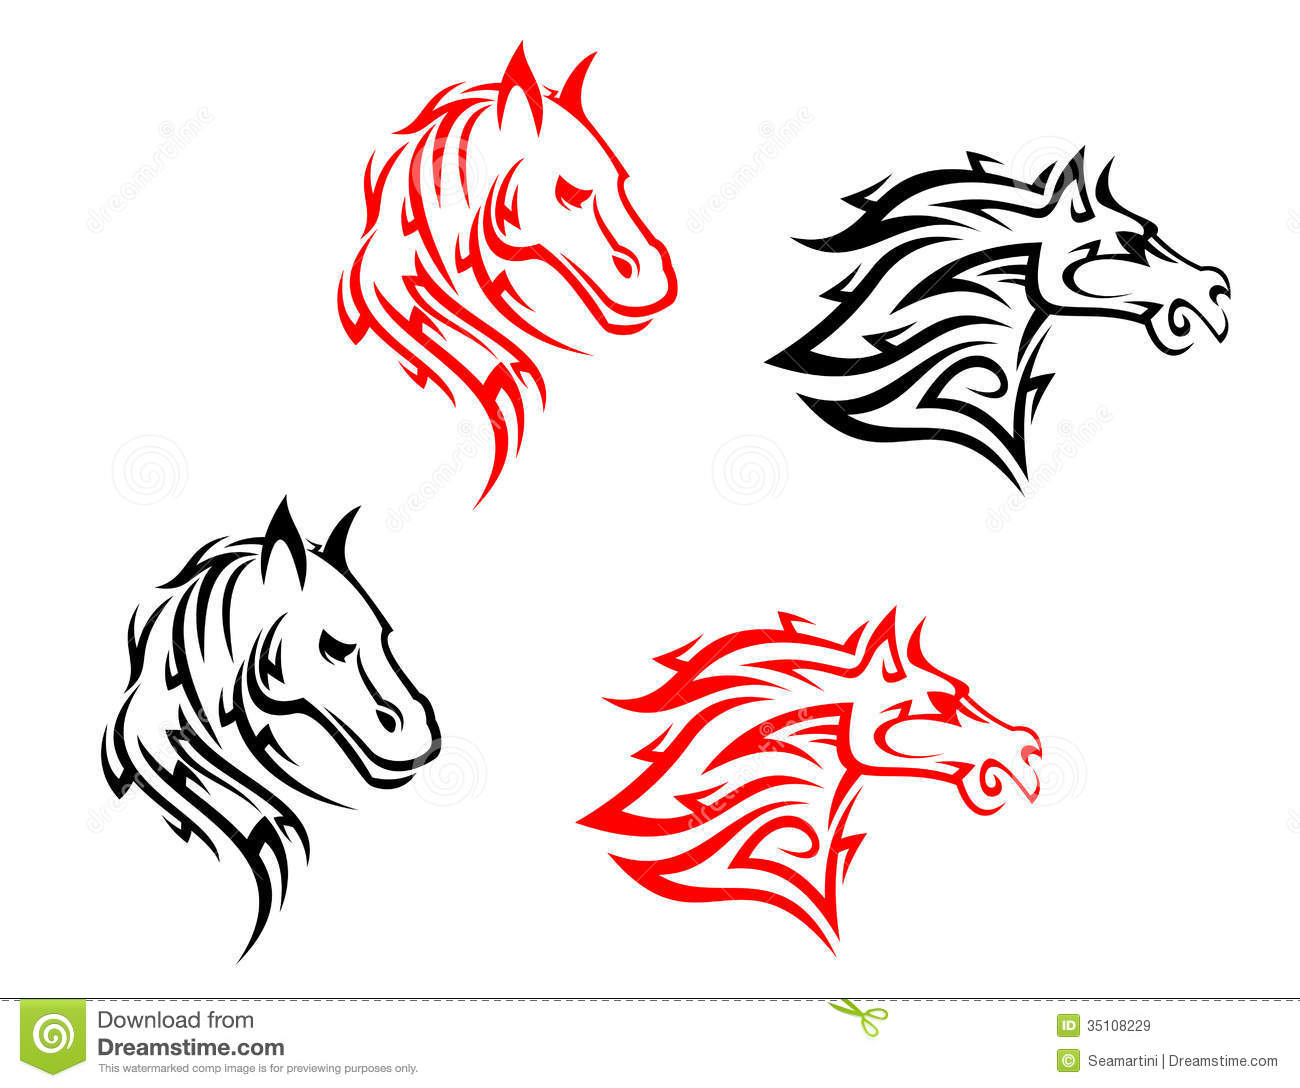 Tattoo Designs Background: Tribal Horses Stock Vector. Image Of Elegance, Insignia